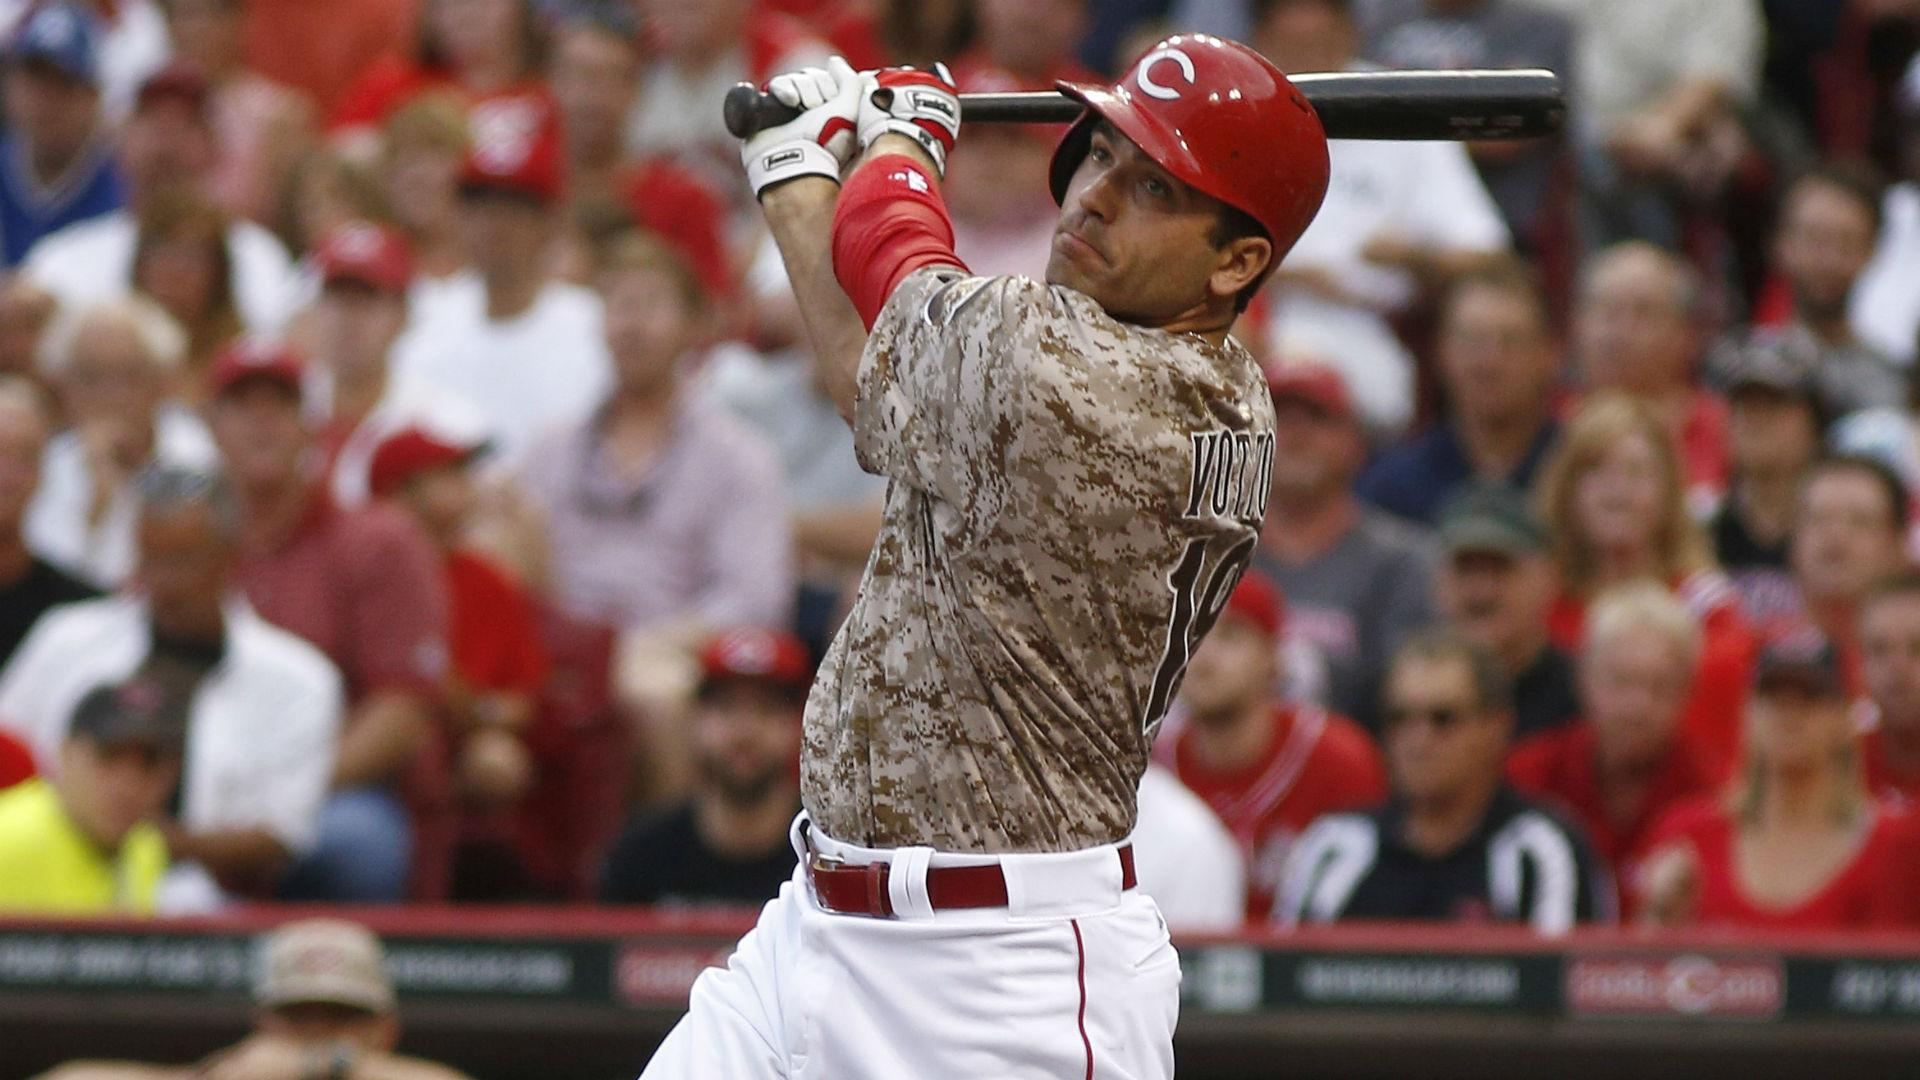 Joey Votto injury update: Reds 1B upset at criticism